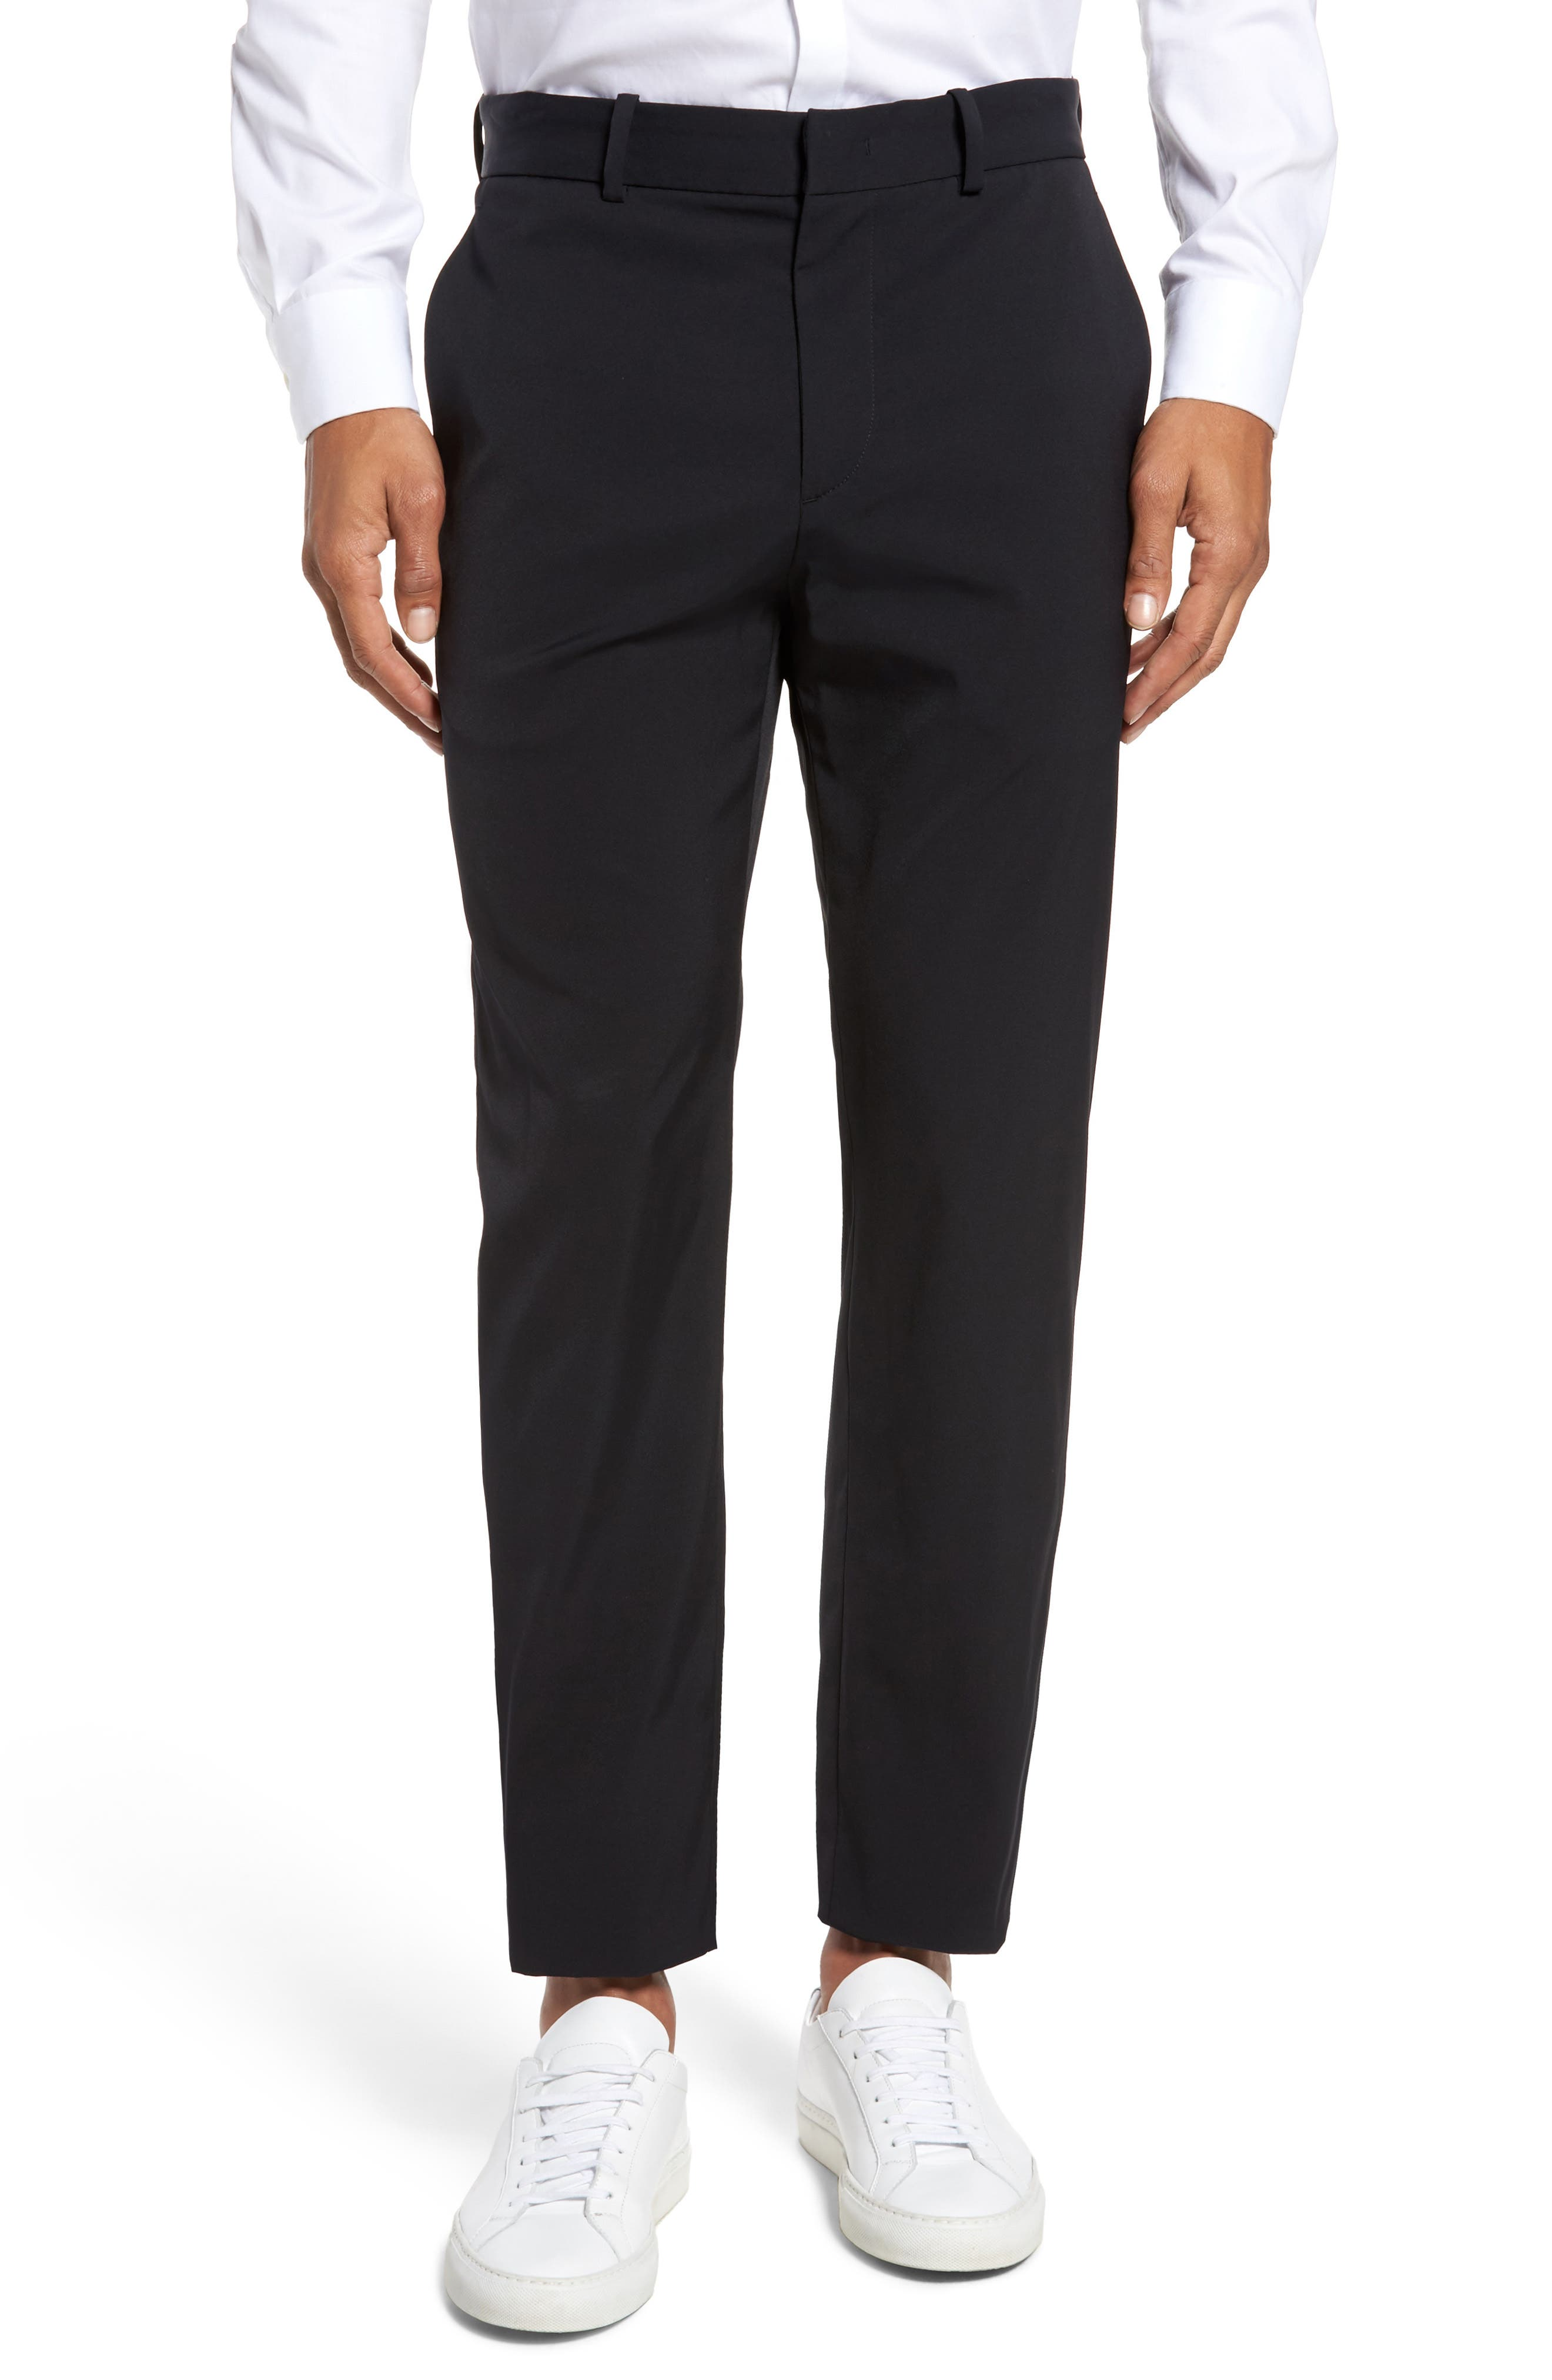 Peterson Neoteric Tech Chino Pants,                         Main,                         color, Black